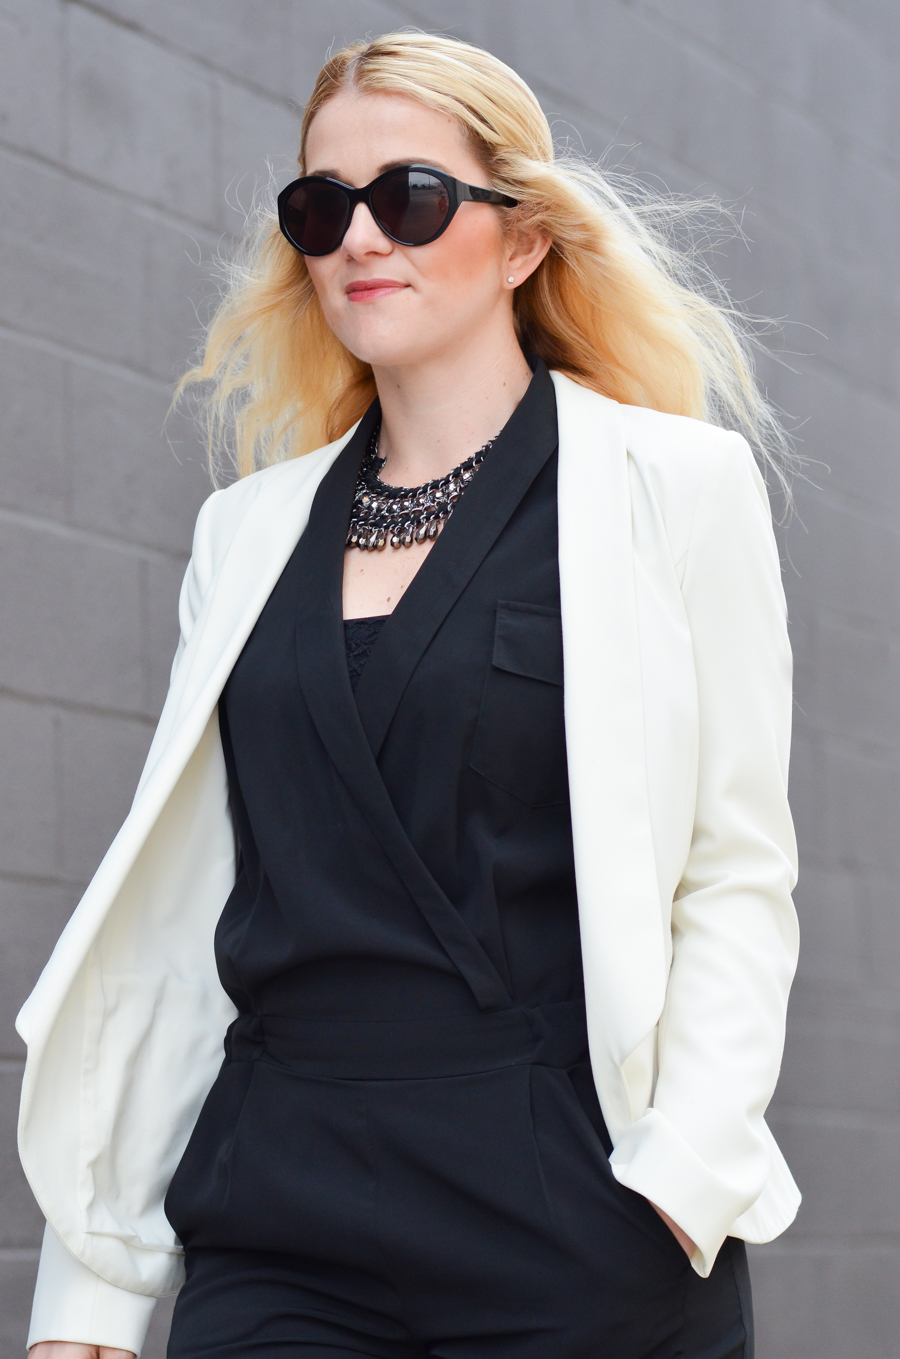 How to Style Black Jumpsuit + White Blazer